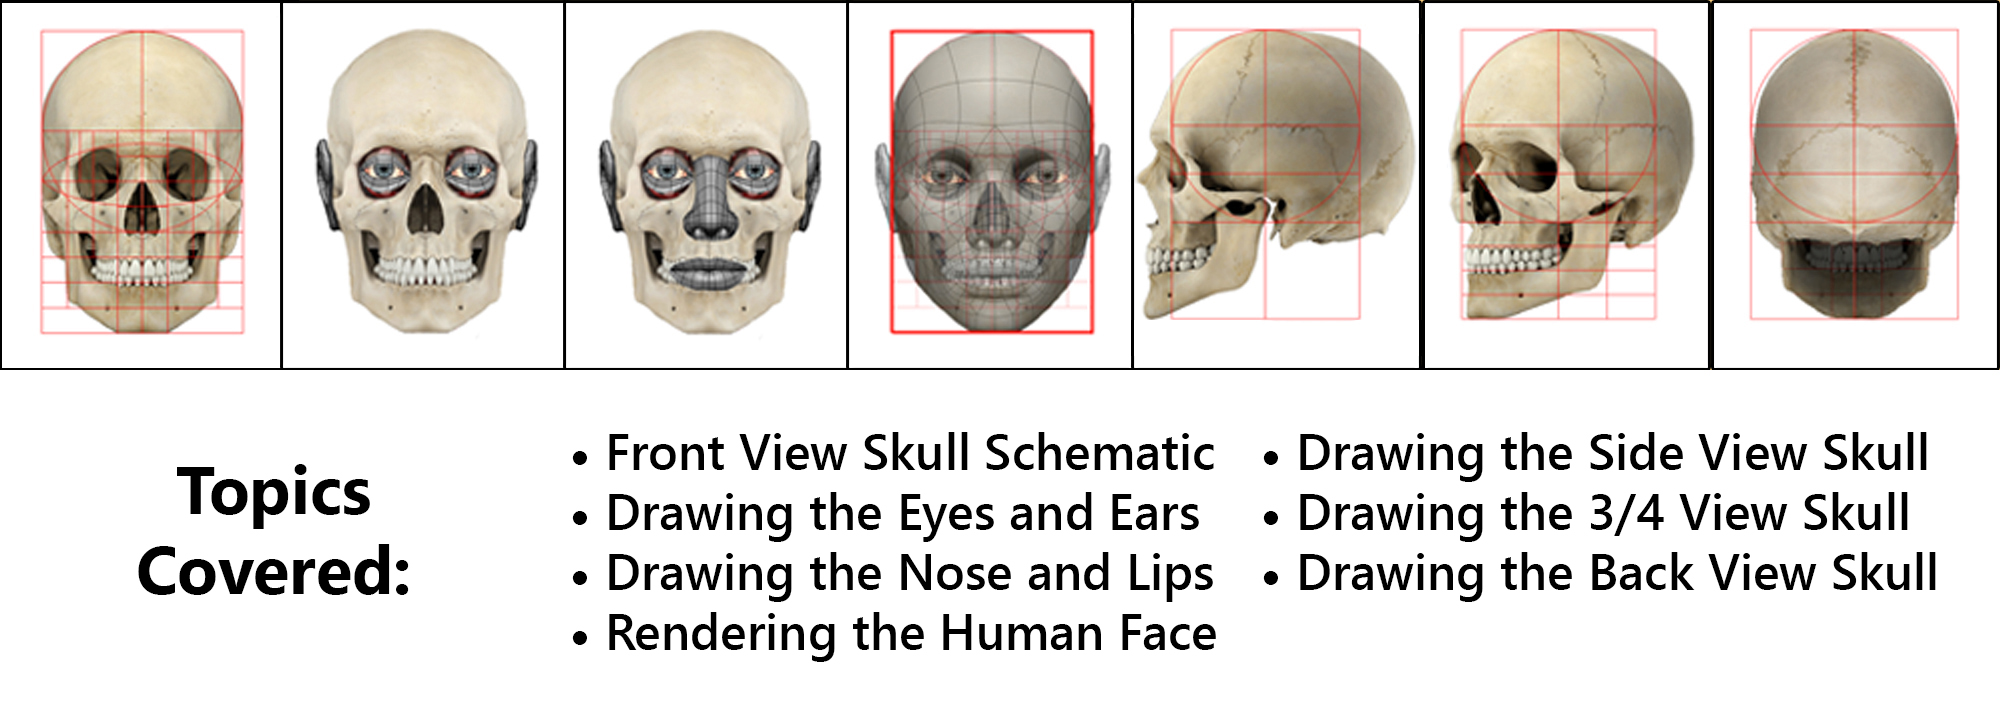 drawing-the-human-head-topics-covered